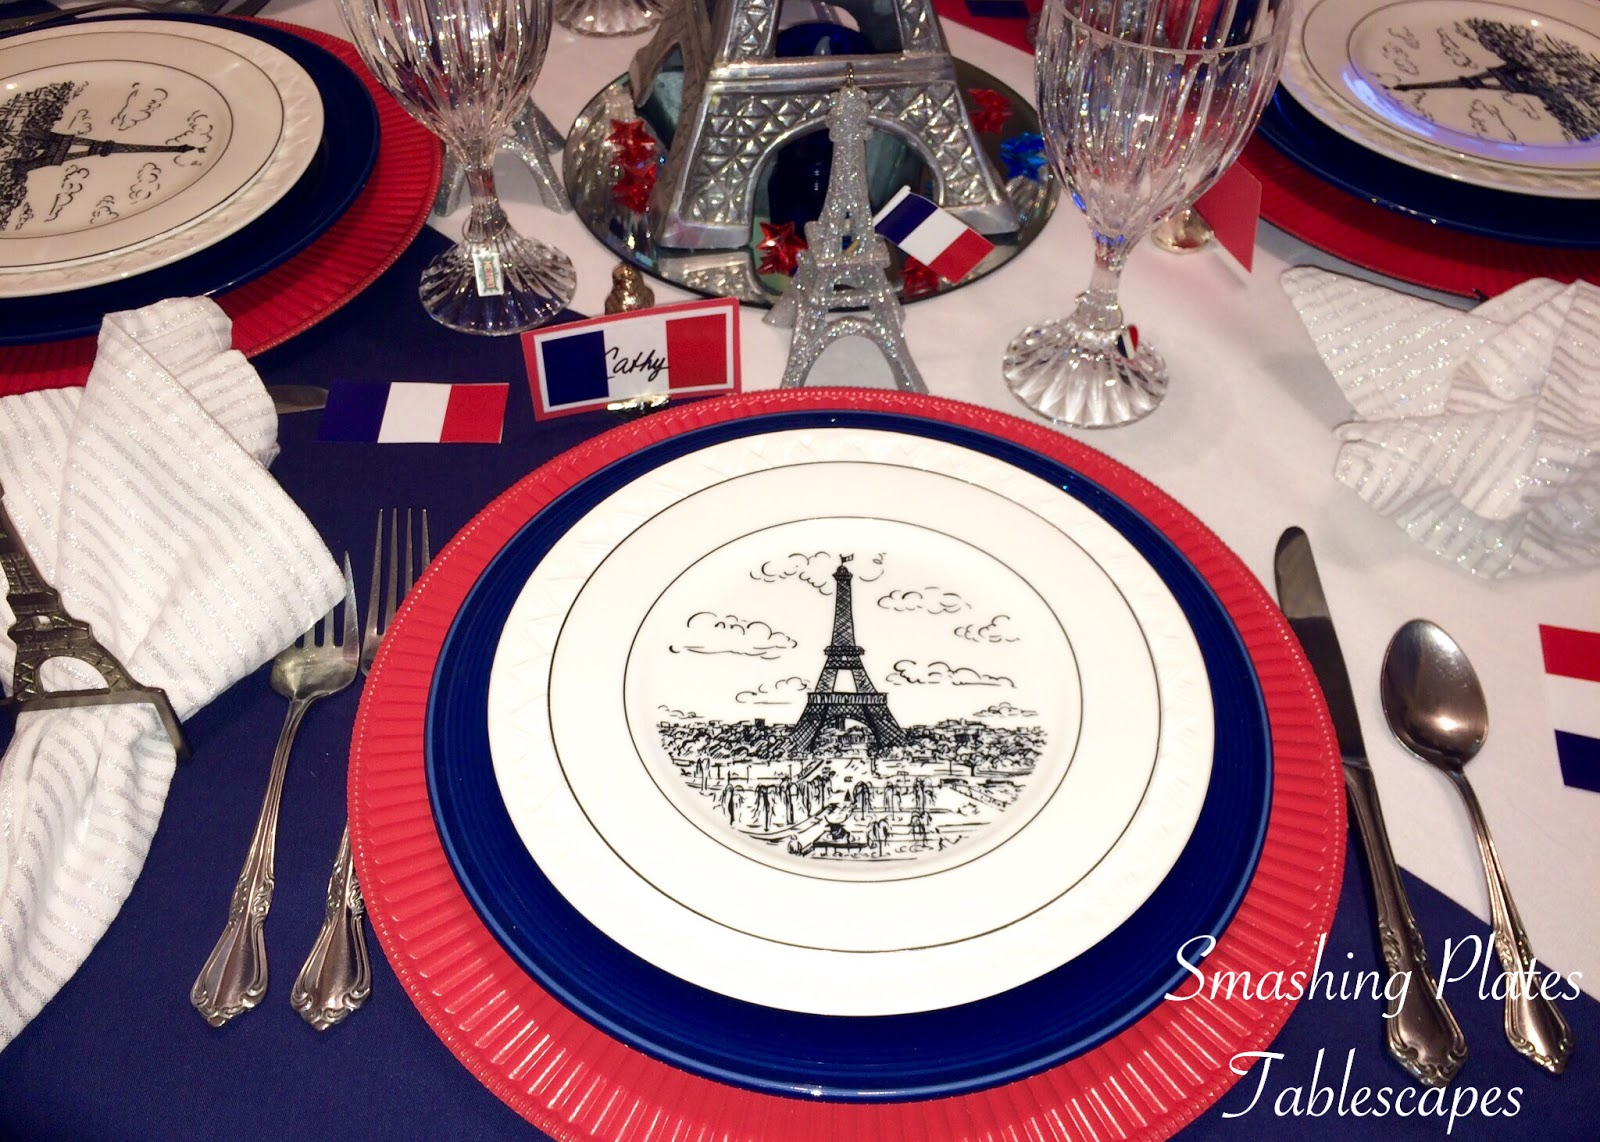 The Eiffel Tower plates are from TJ Maxx many years ago. I also have a smaller set to use as bread plates. & Smashing Plates Tablescapes: Bastille Day